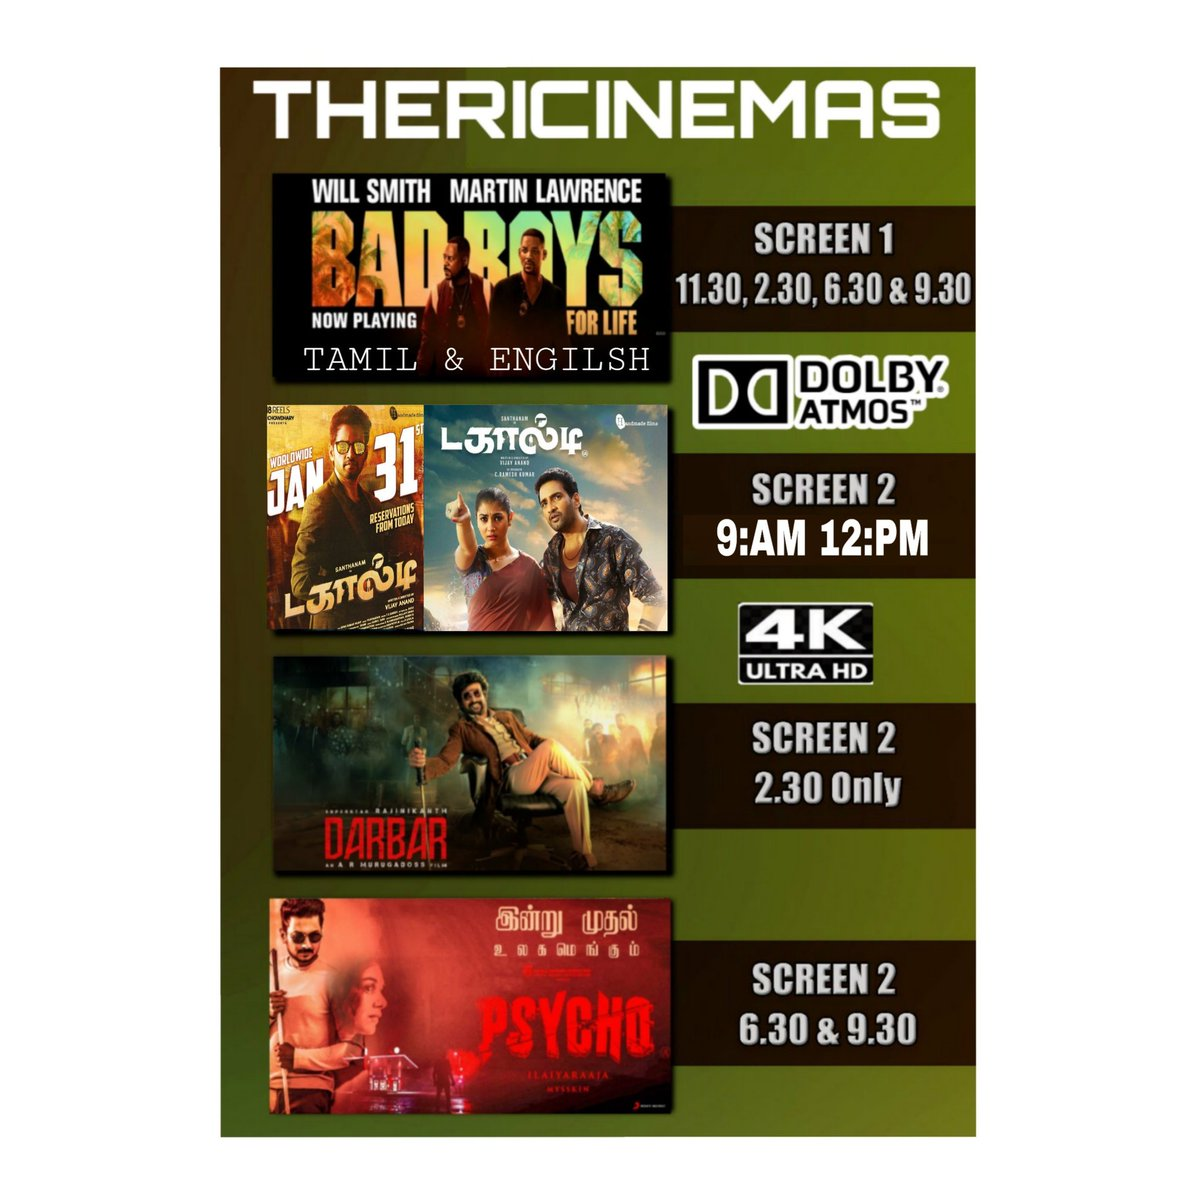 @Theri_Cinemas LinesUp For The Mega Movie Marathon .  Bookings Now Begins At @Theri_Cinemas For #BadBoysForLife | #Dagaalty | #Darbar  & #Psycho .  Grab Your Tickets Now At @TicketNew   Experience The Movie In 4K Projection With DOLBY ATMOS Sound System.pic.twitter.com/ULMXI41ENN